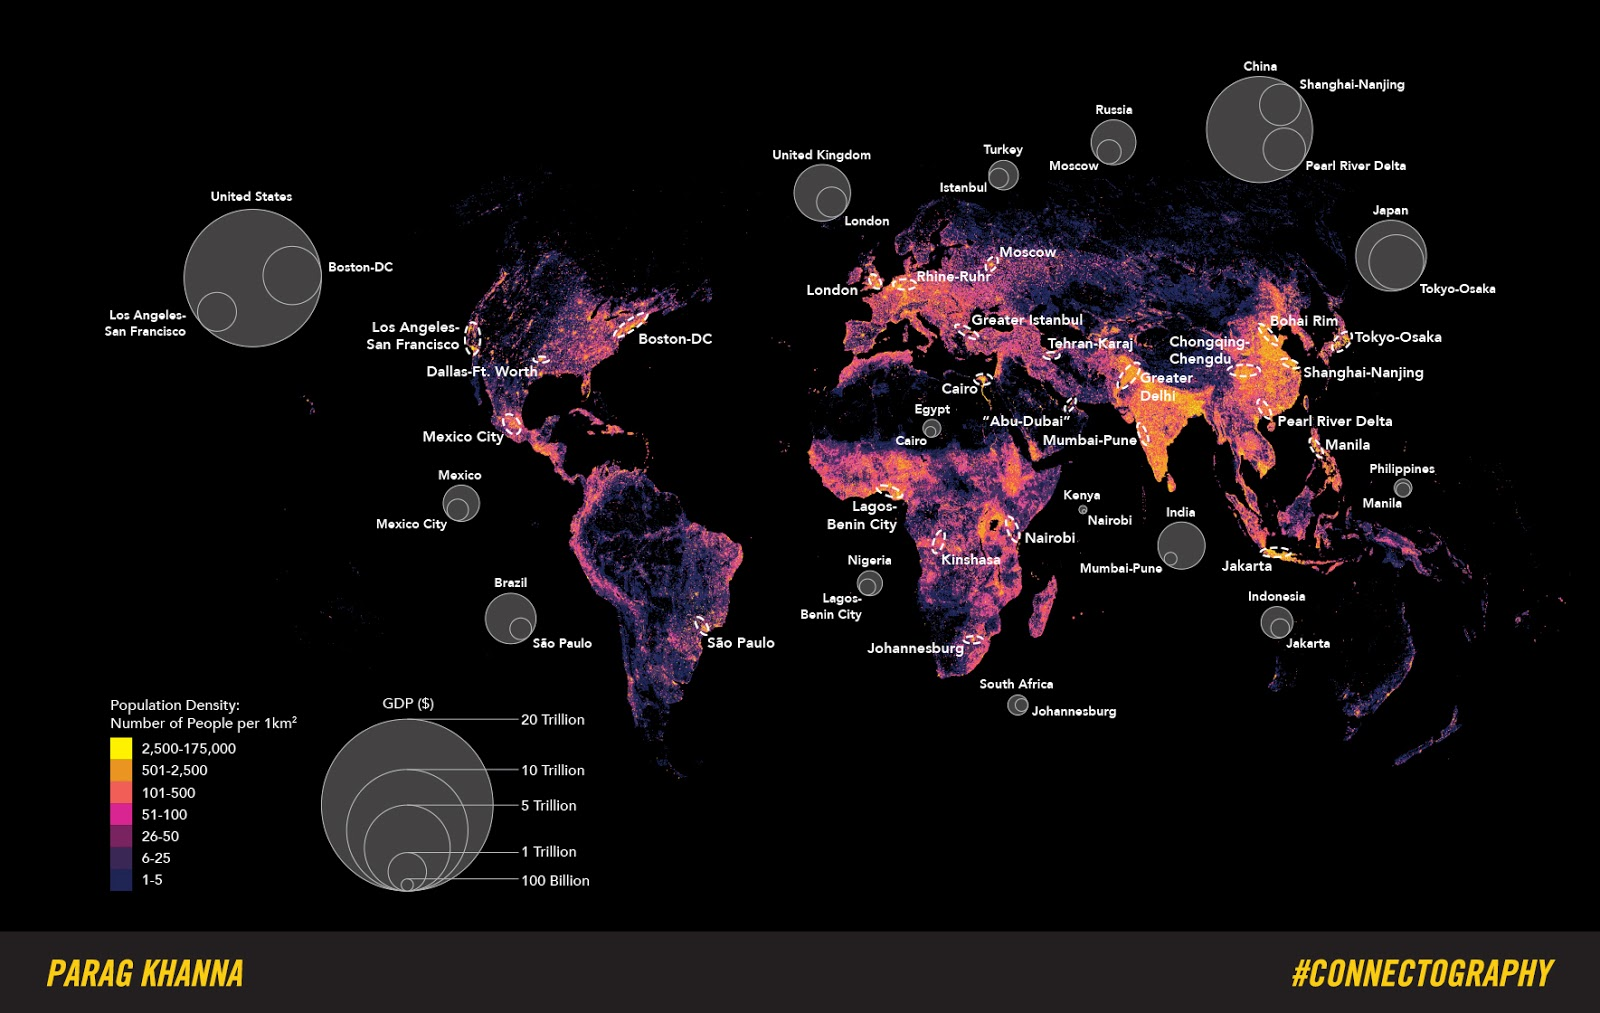 Megacity Regions of the World (Population density & GDP)